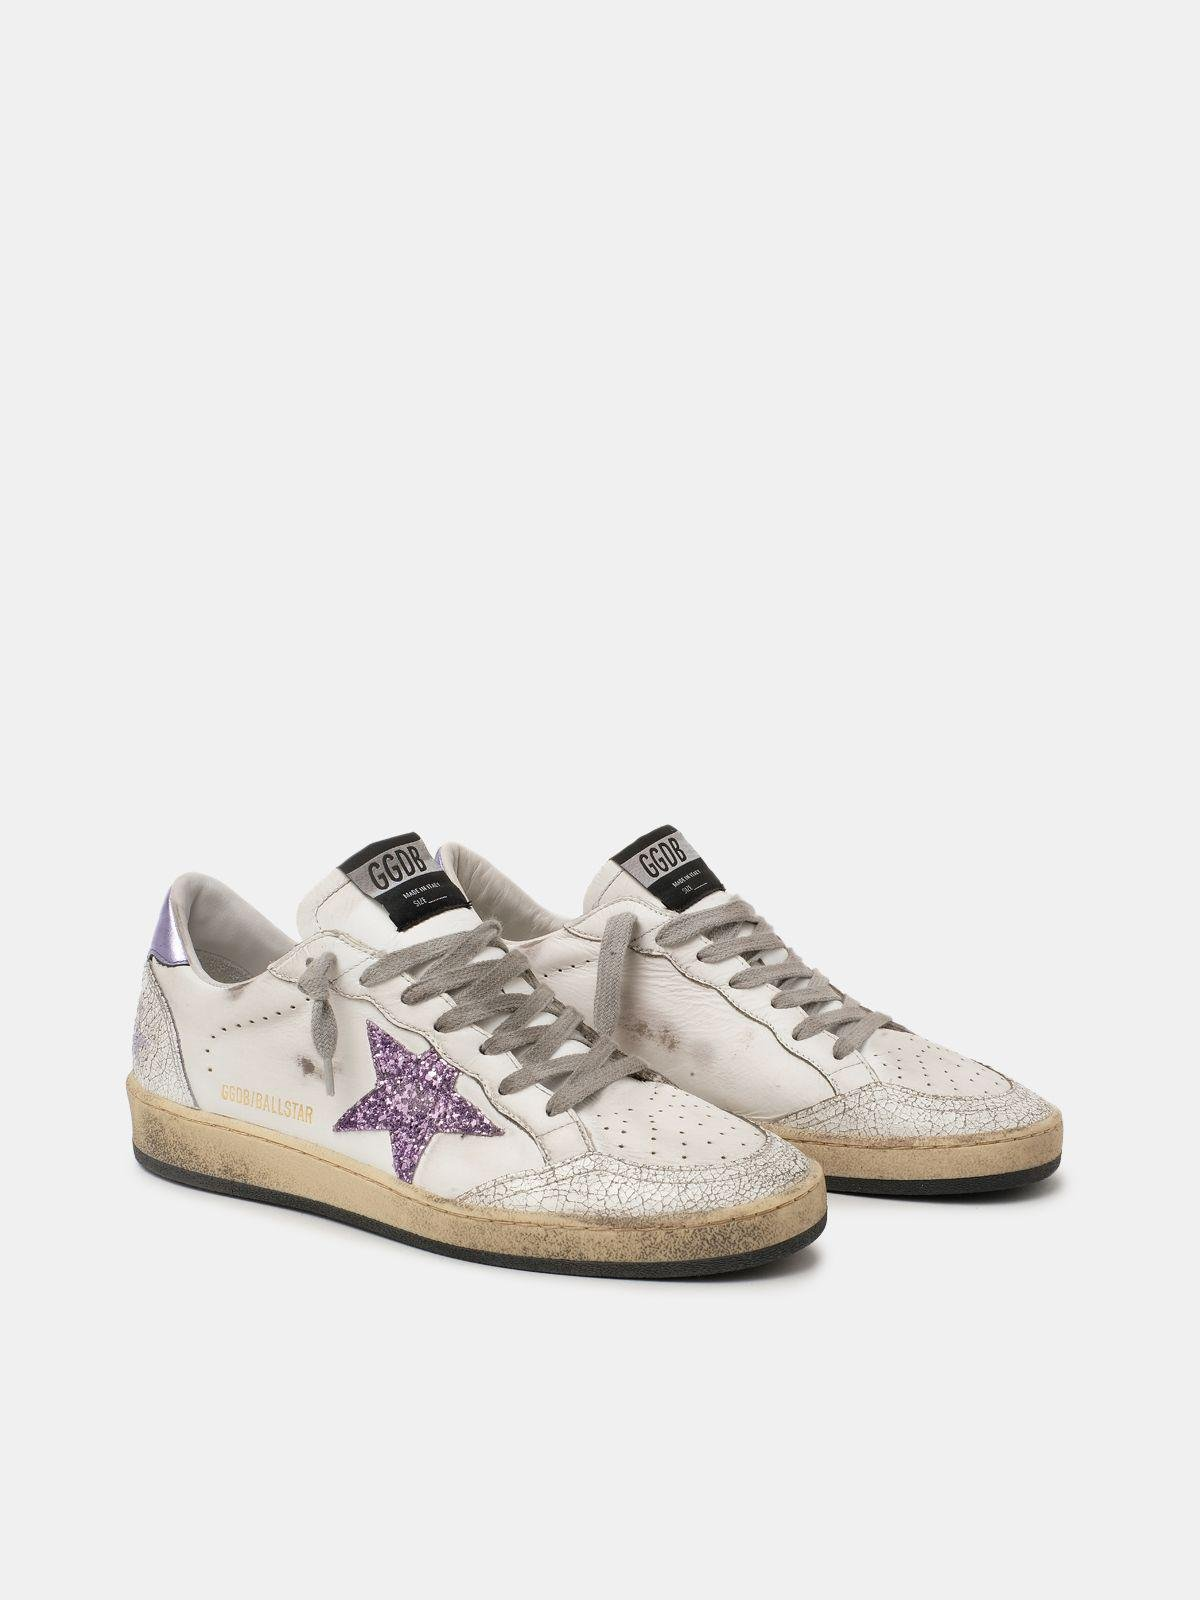 Ball Star sneakers with purple glitter 2